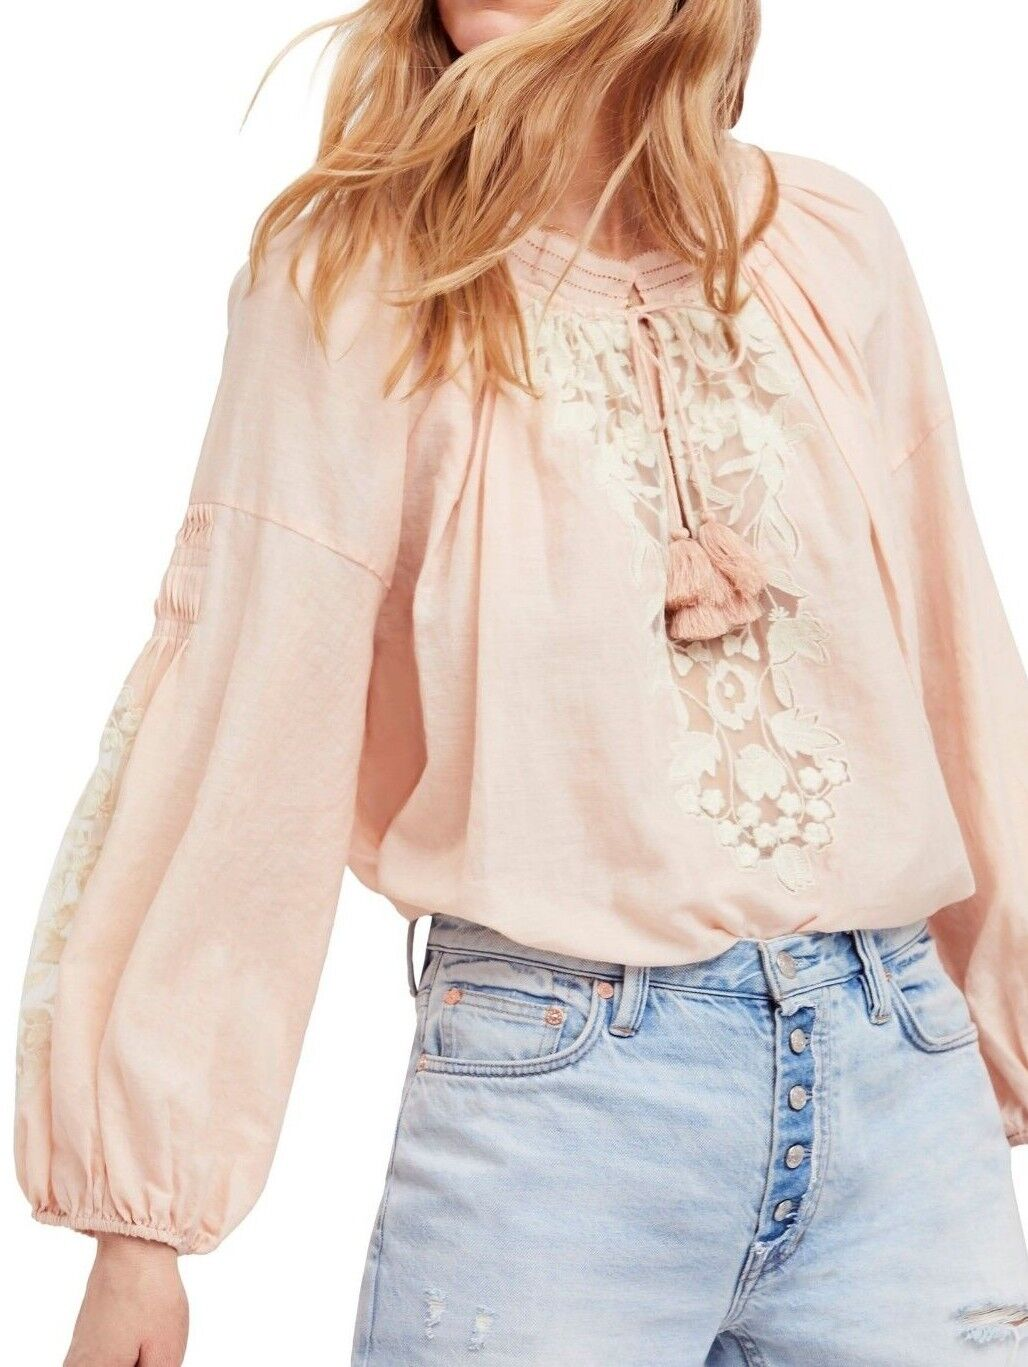 NWT FREE PEOPLE SzXS SHIMLA EMBROIDErot LACE PANELS LONG SLEEVE TOP PEACH